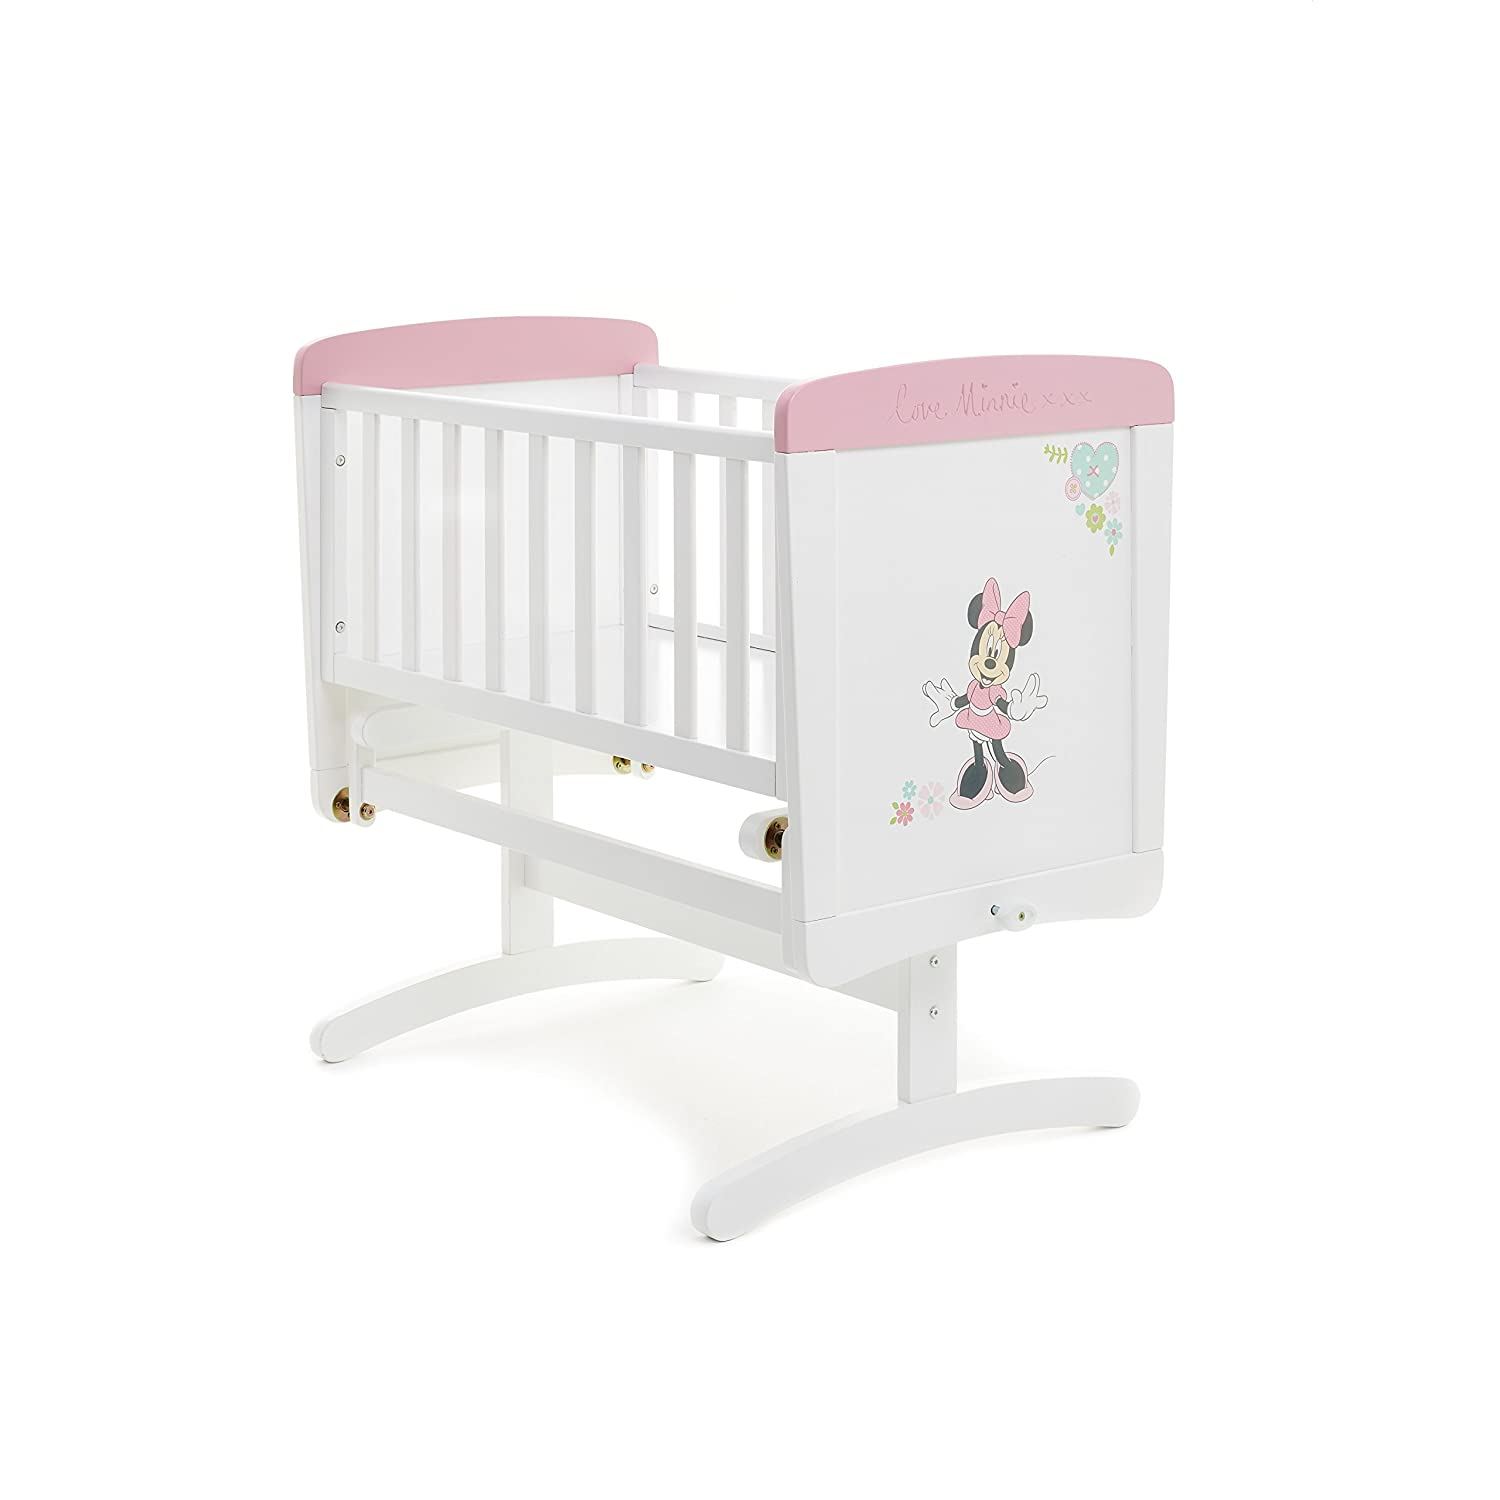 Disney Minnie Mouse Gliding Crib (White with Pink Trim) 22DB0306